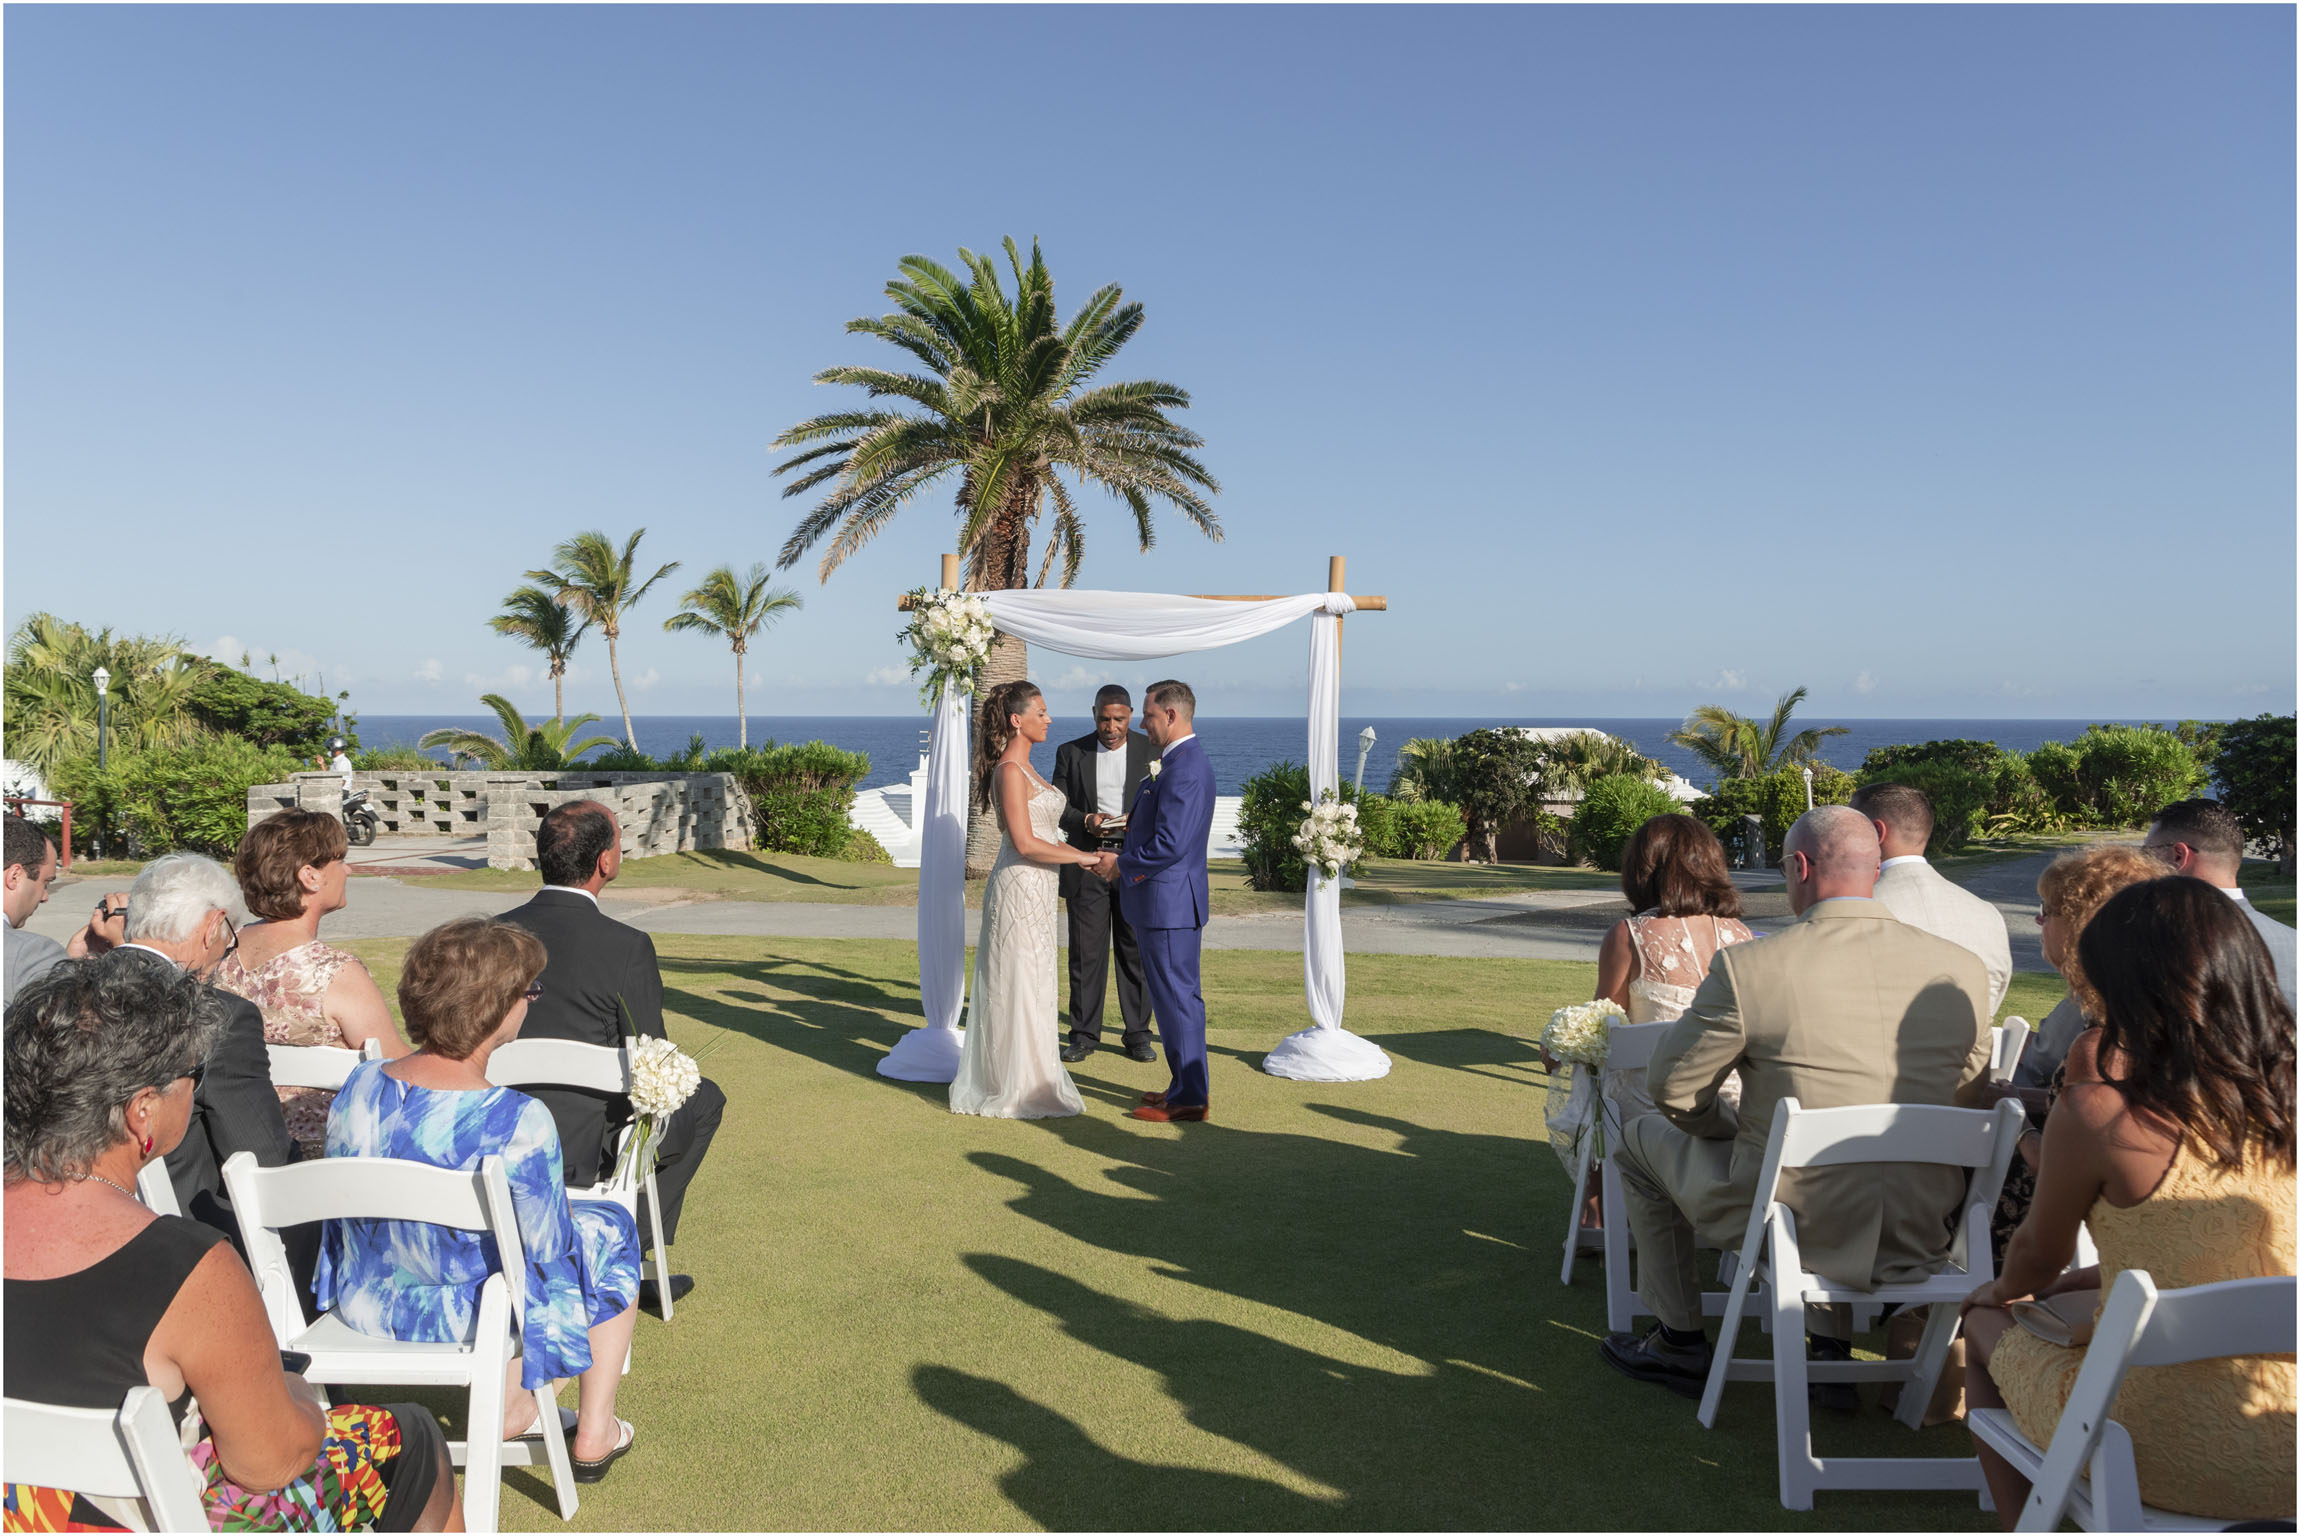 ©FianderFoto_Catherine_Kenny_Coral+Beach+Wedding_162.jpg